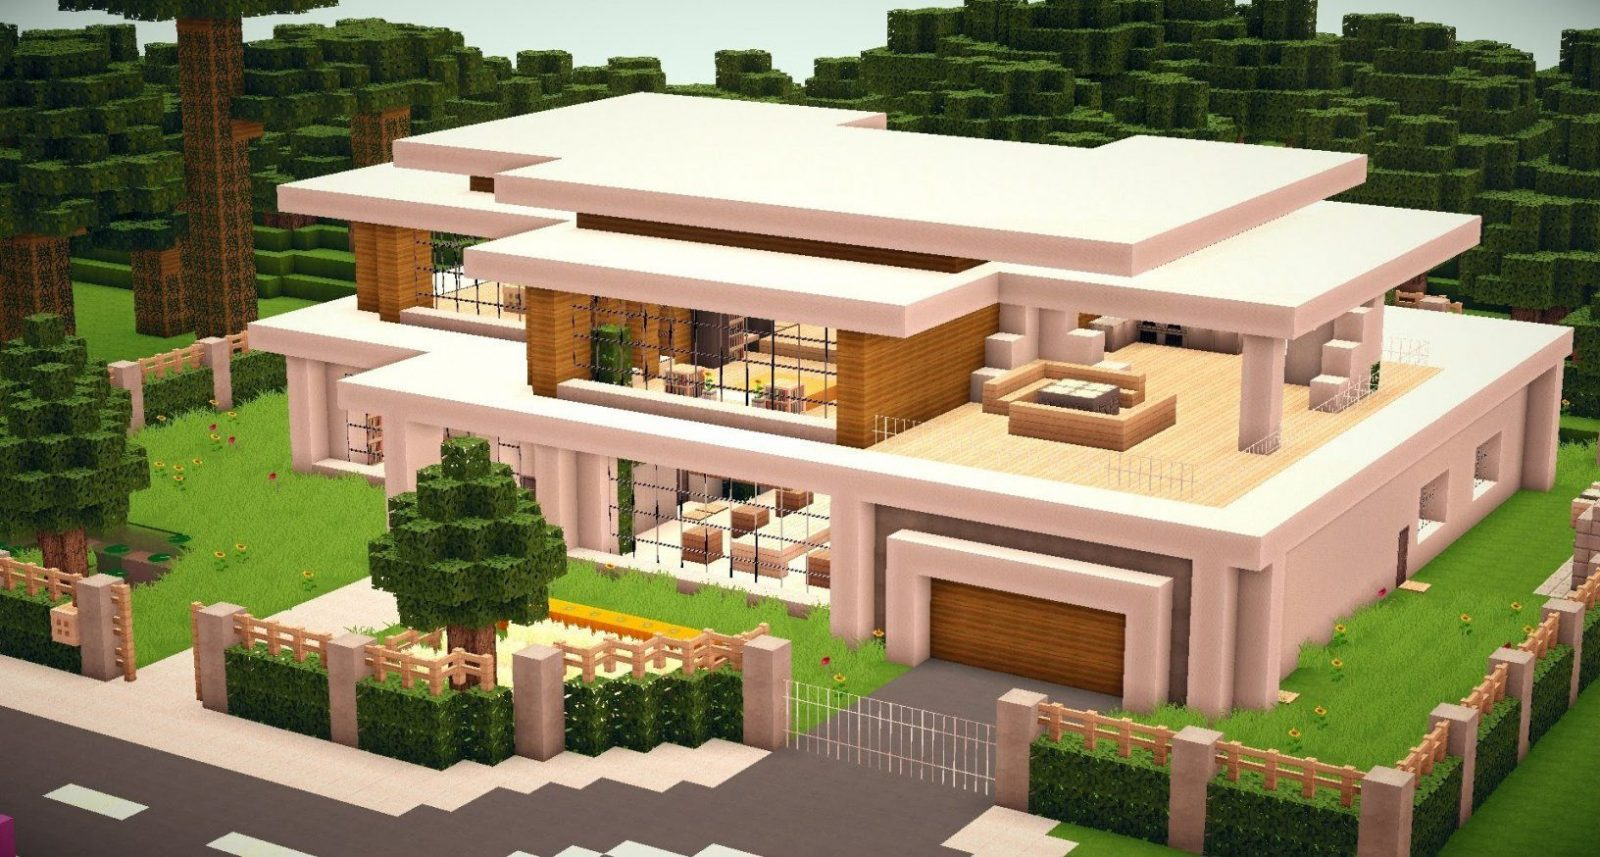 Minecraft  Modern House 010 [Hd][Download]  Youtube von Minecraft Modernes Haus Download Bild